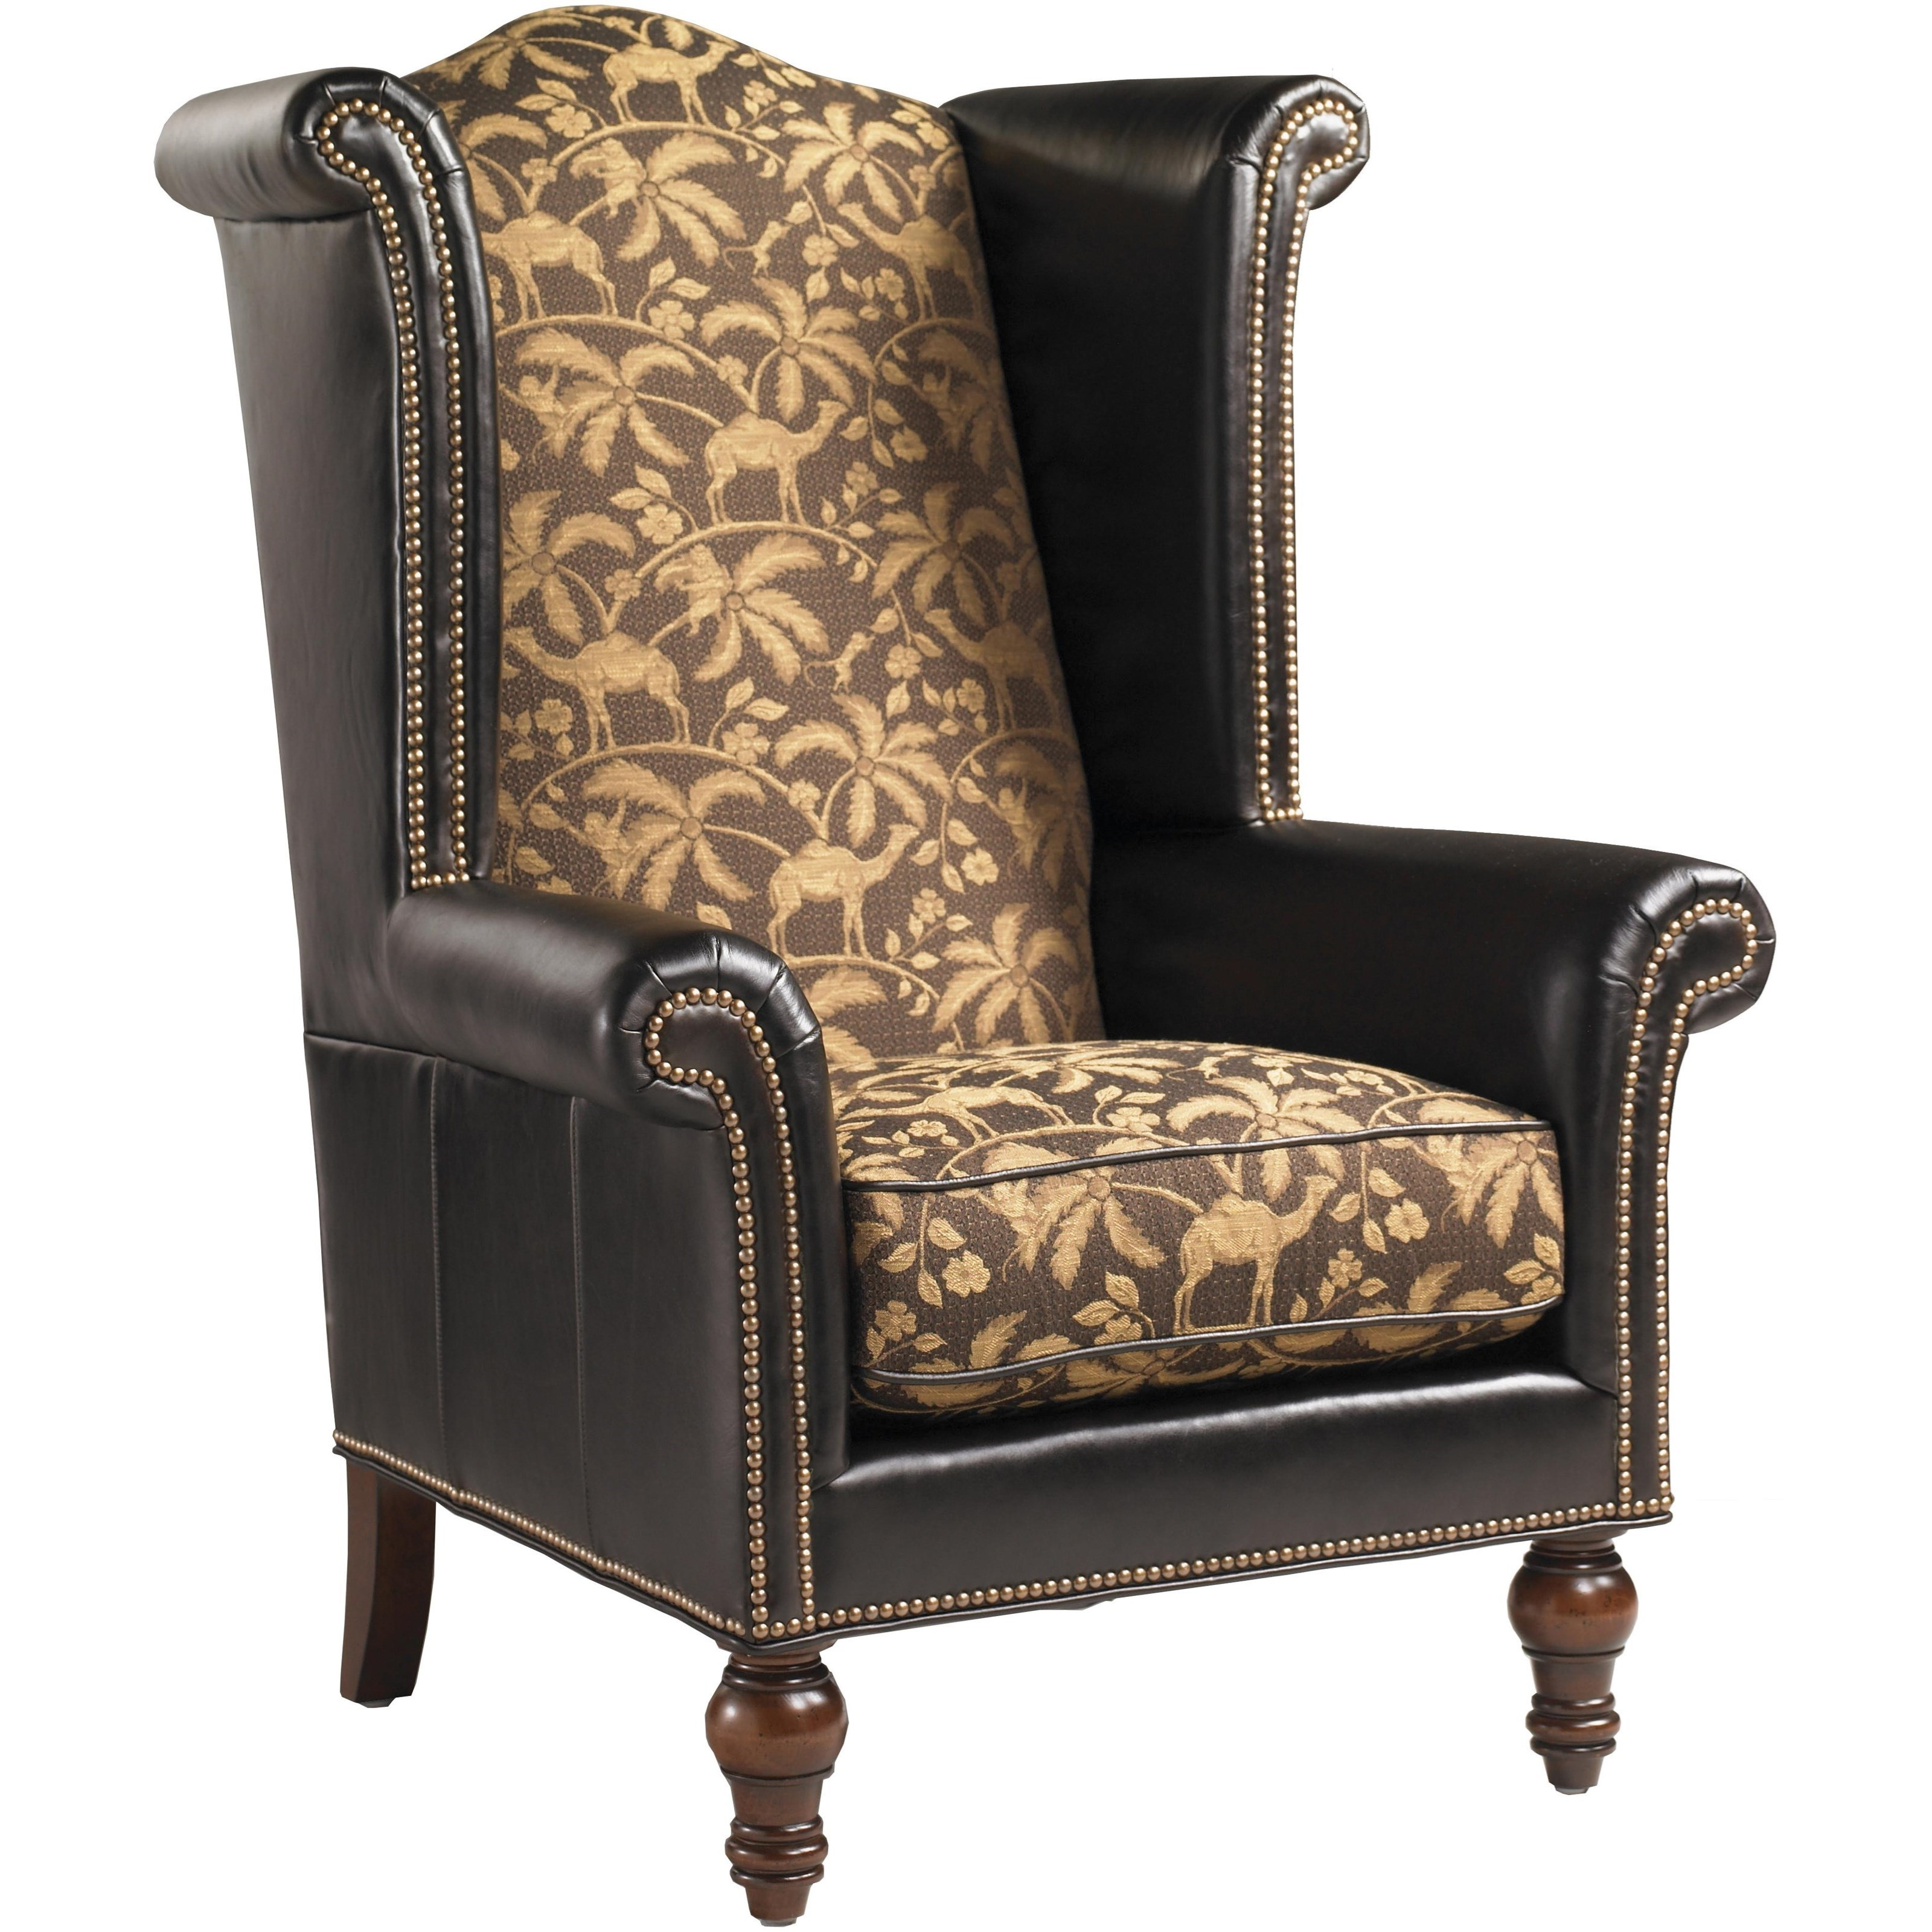 Leather Customizable Kings Row Leather Chair by Lexington at Baer's Furniture